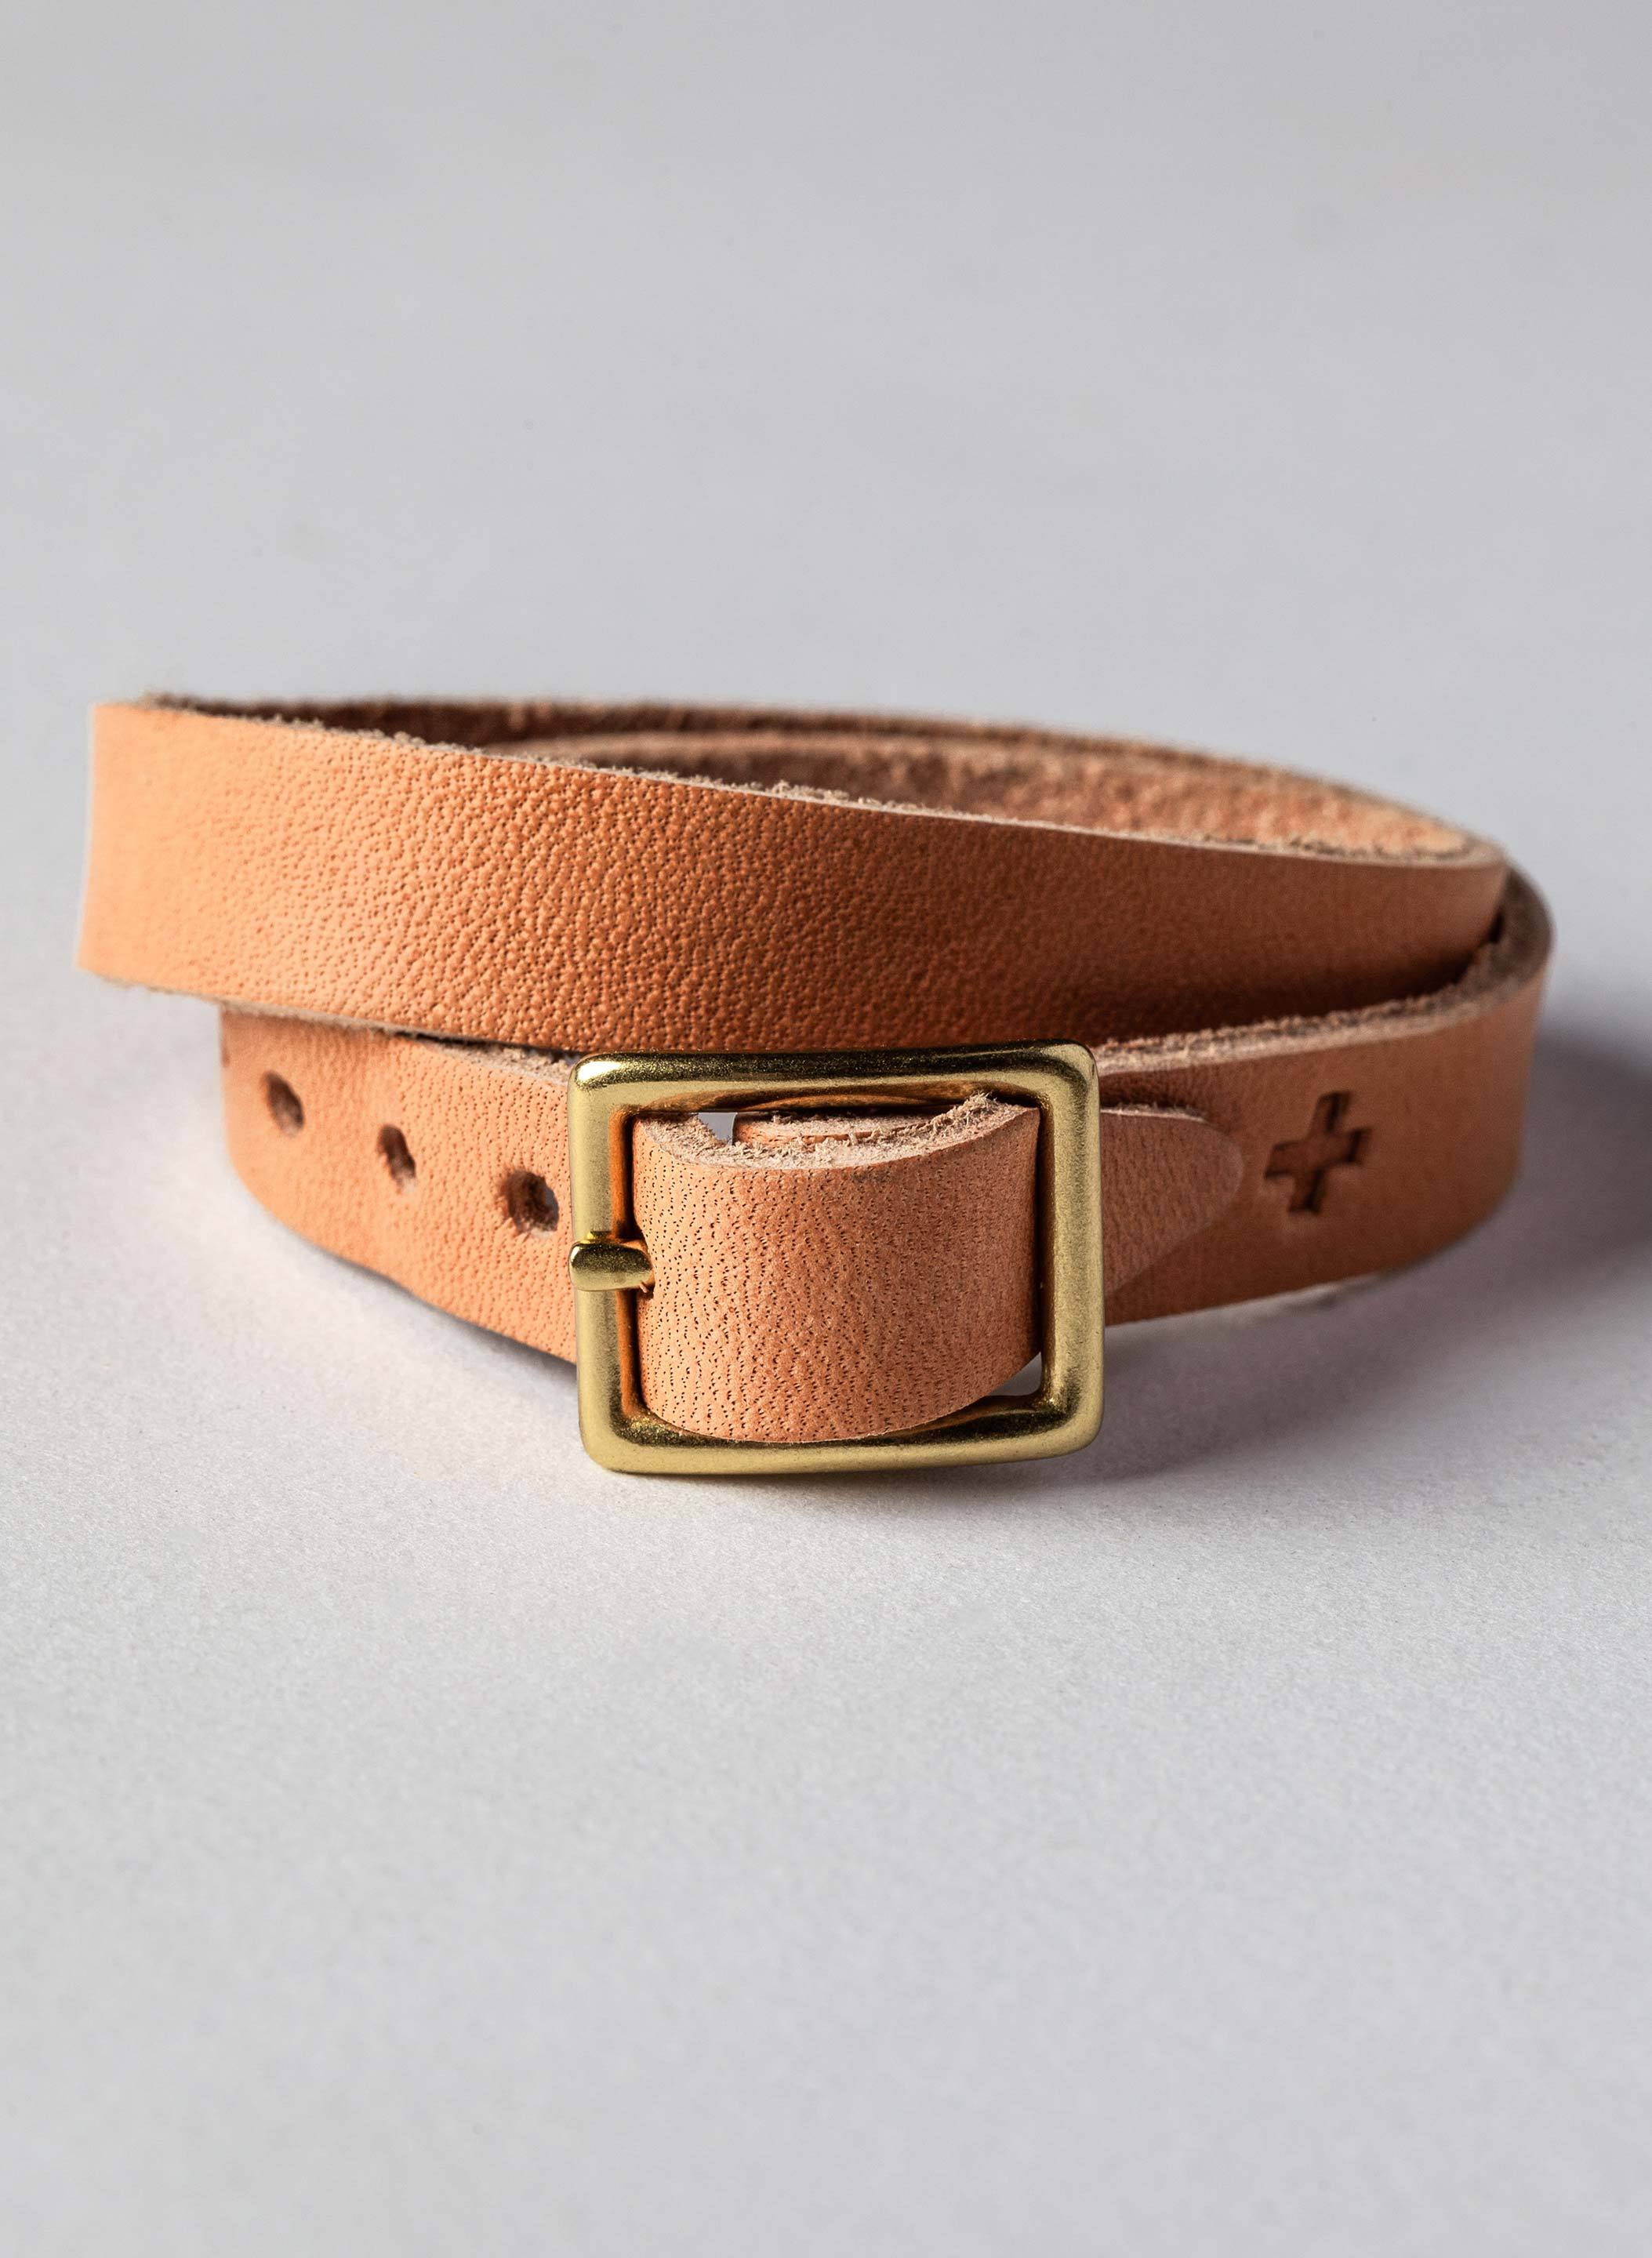 imogene + willie - emil erwin wrap bracelet in natural